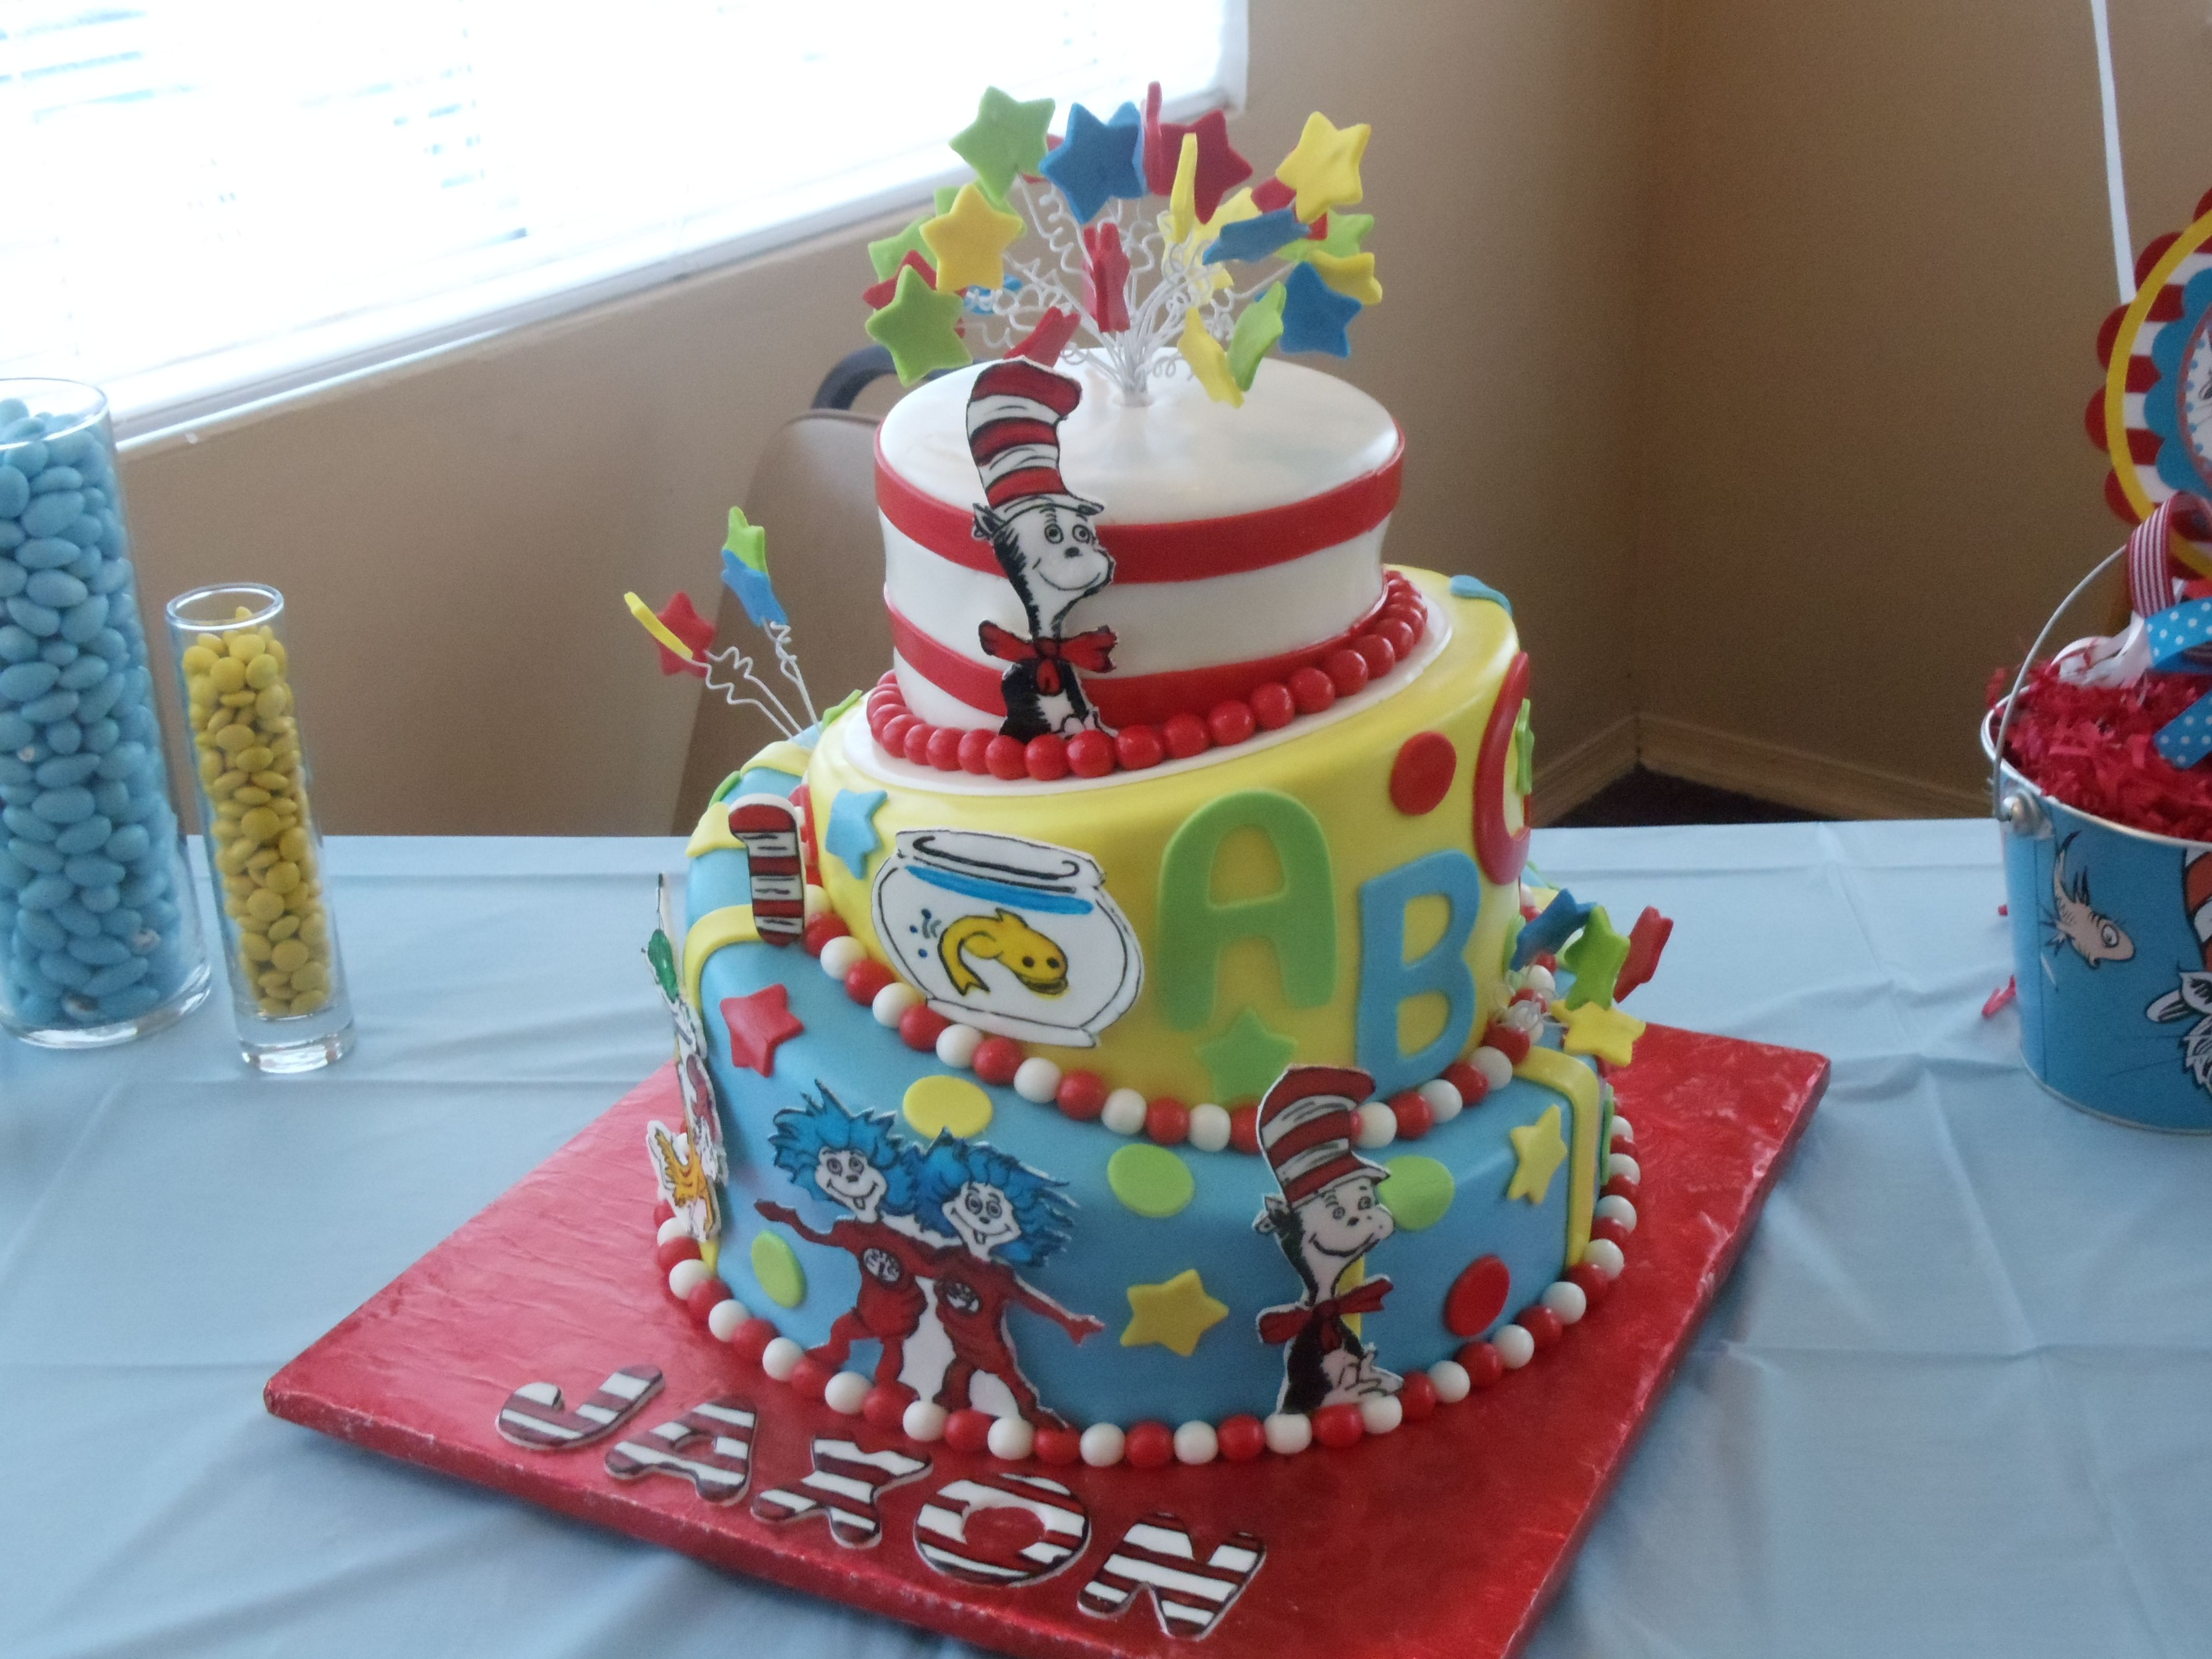 Swell Birthday Cake Dr Seuss Dr Suess Birthday Party Ideas Dr Seuss Funny Birthday Cards Online Aeocydamsfinfo